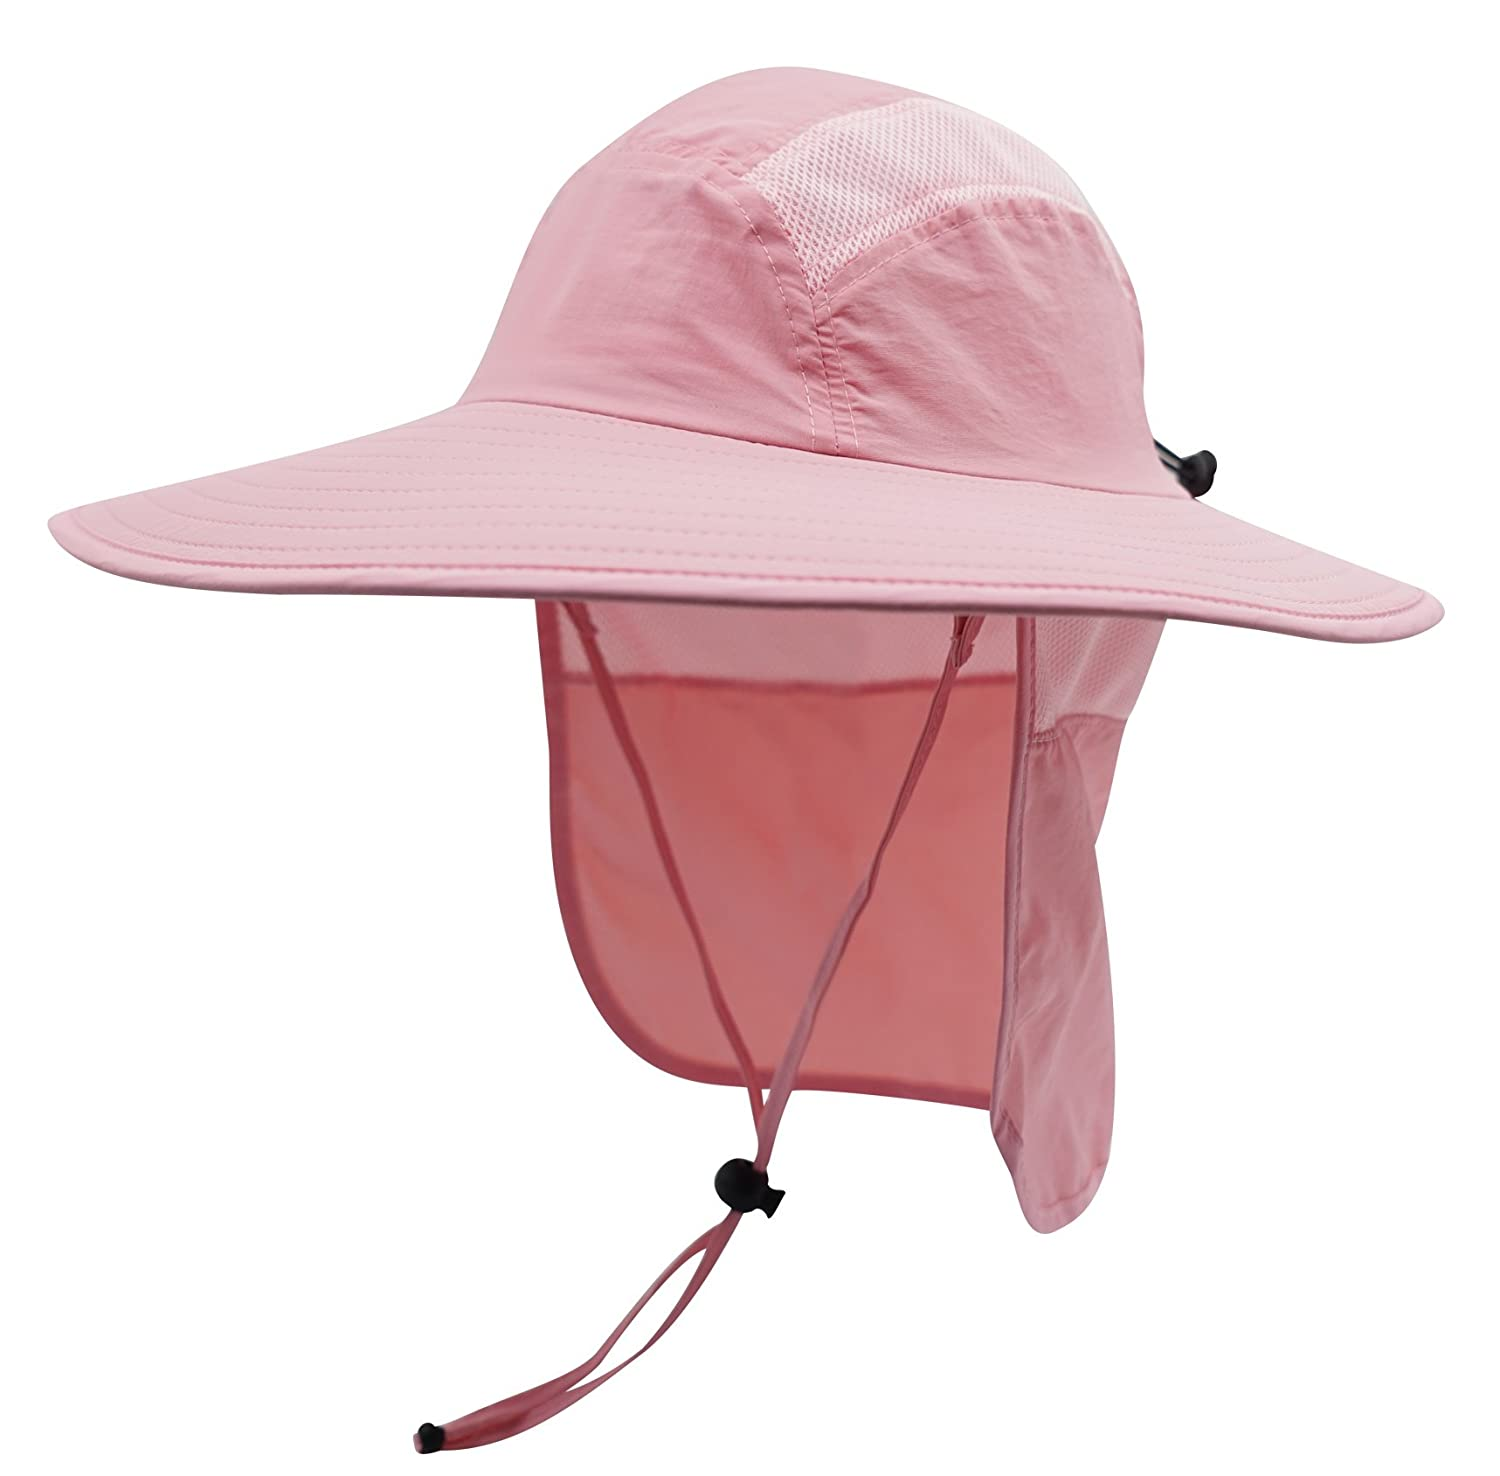 d6fd7a5b2ed Decentron Adult UPF 50+ Sun Protection Cap Wide Brim Bucket Fishing Hat  with Neck Flap Soft Pink  Amazon.co.uk  Clothing